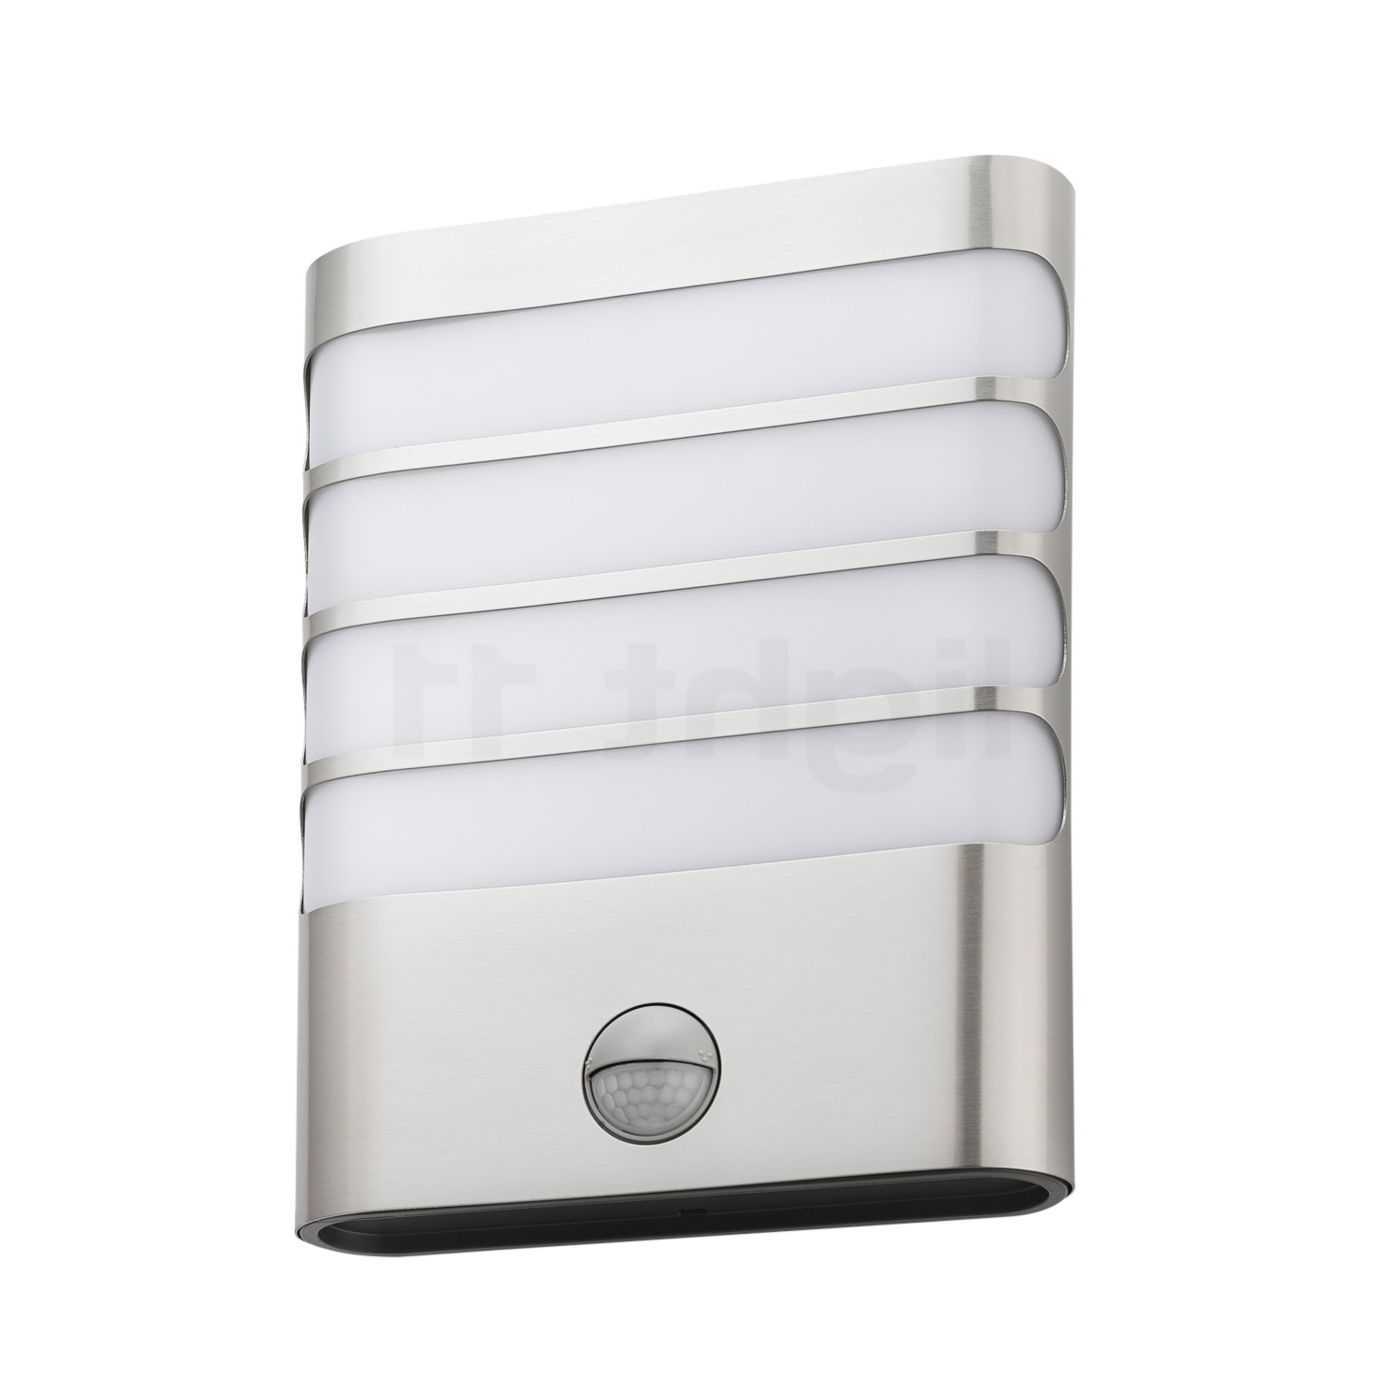 Philips Mygarden Outdoor Wall Light View Photos Of Led Outdoor Raccoon Wall Lights With Motion